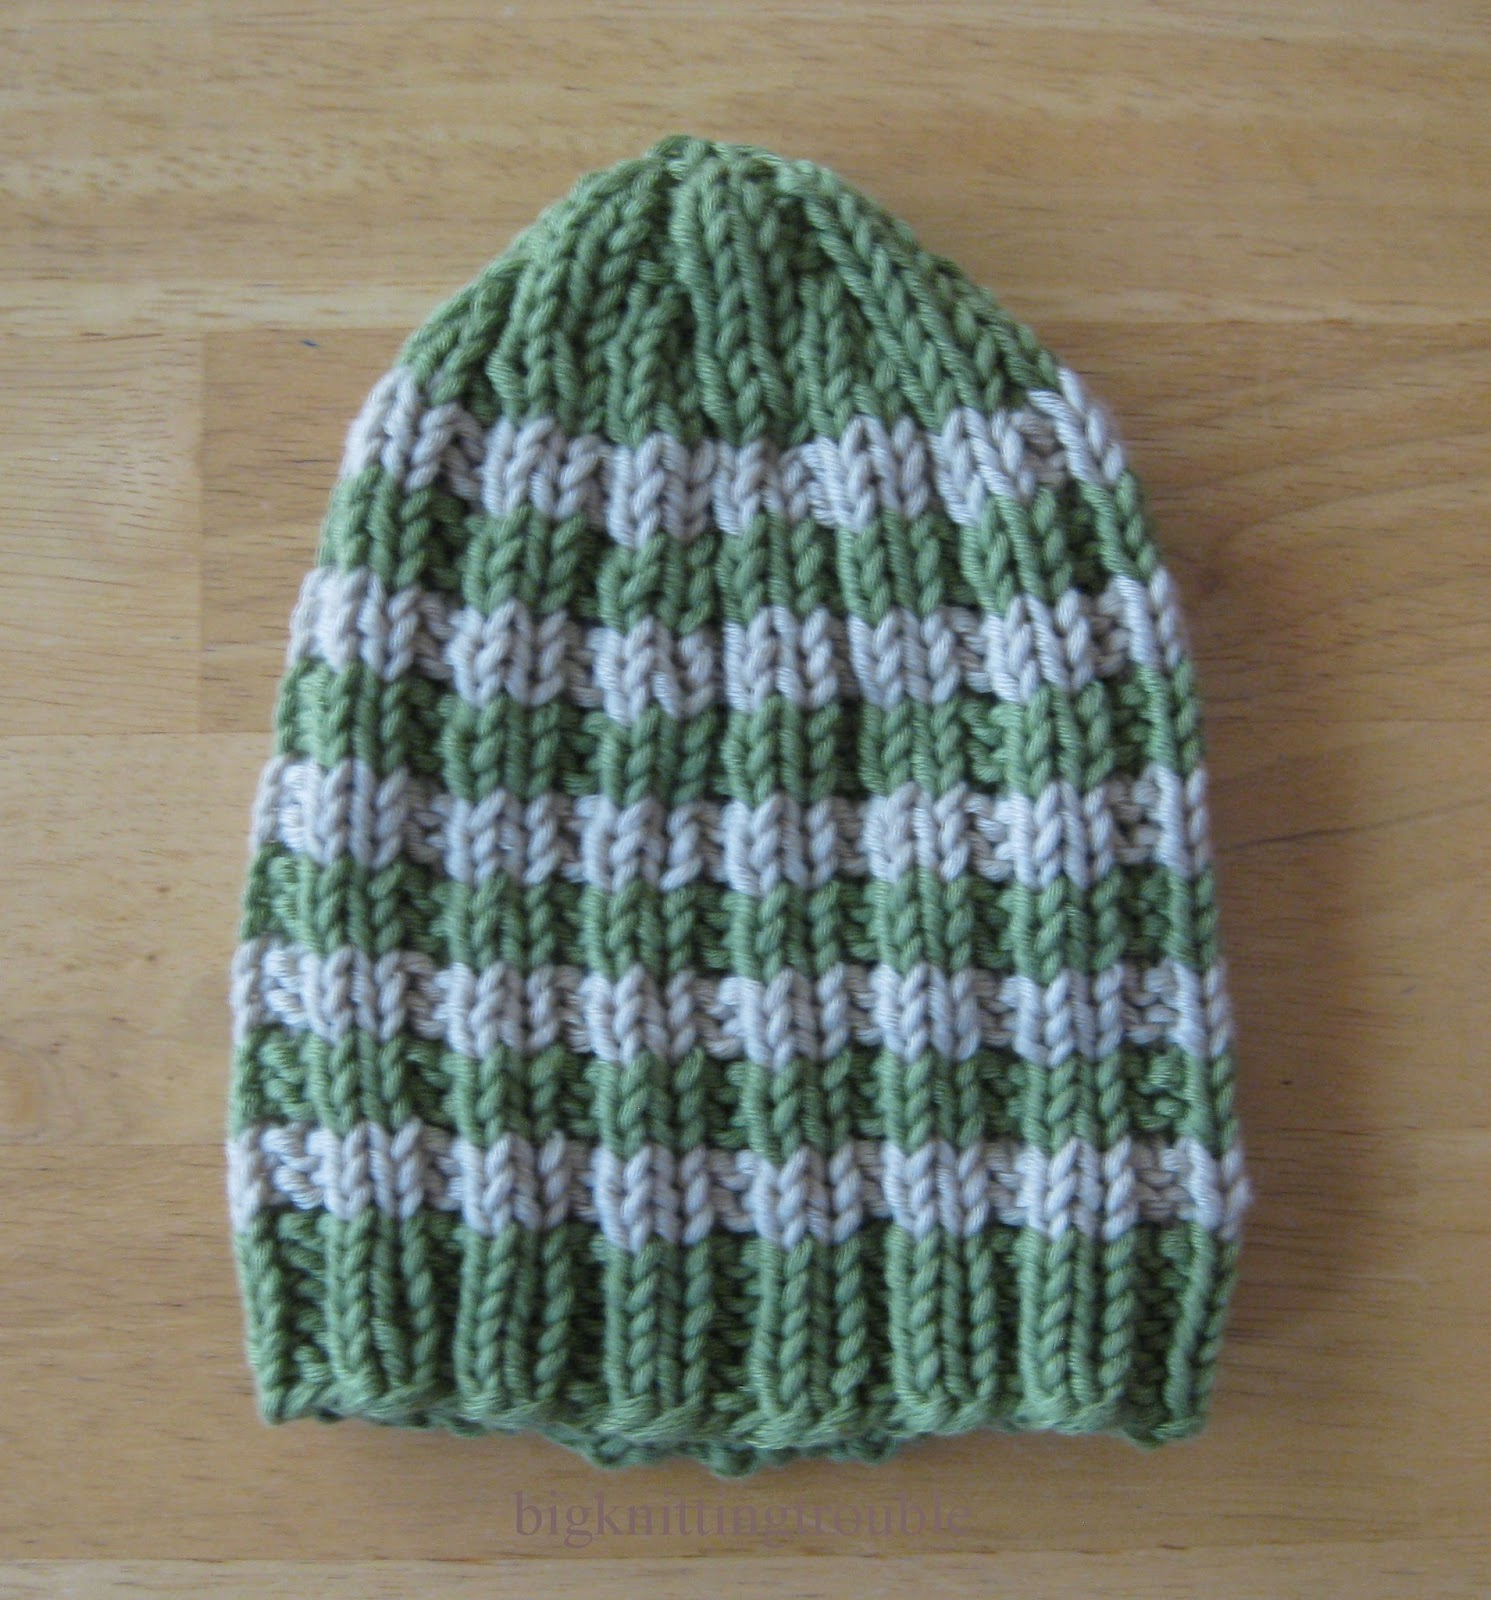 Knitting Patterns For Neonatal Units : Big Knitting Trouble: FOs: Bright Bebe Bonnets